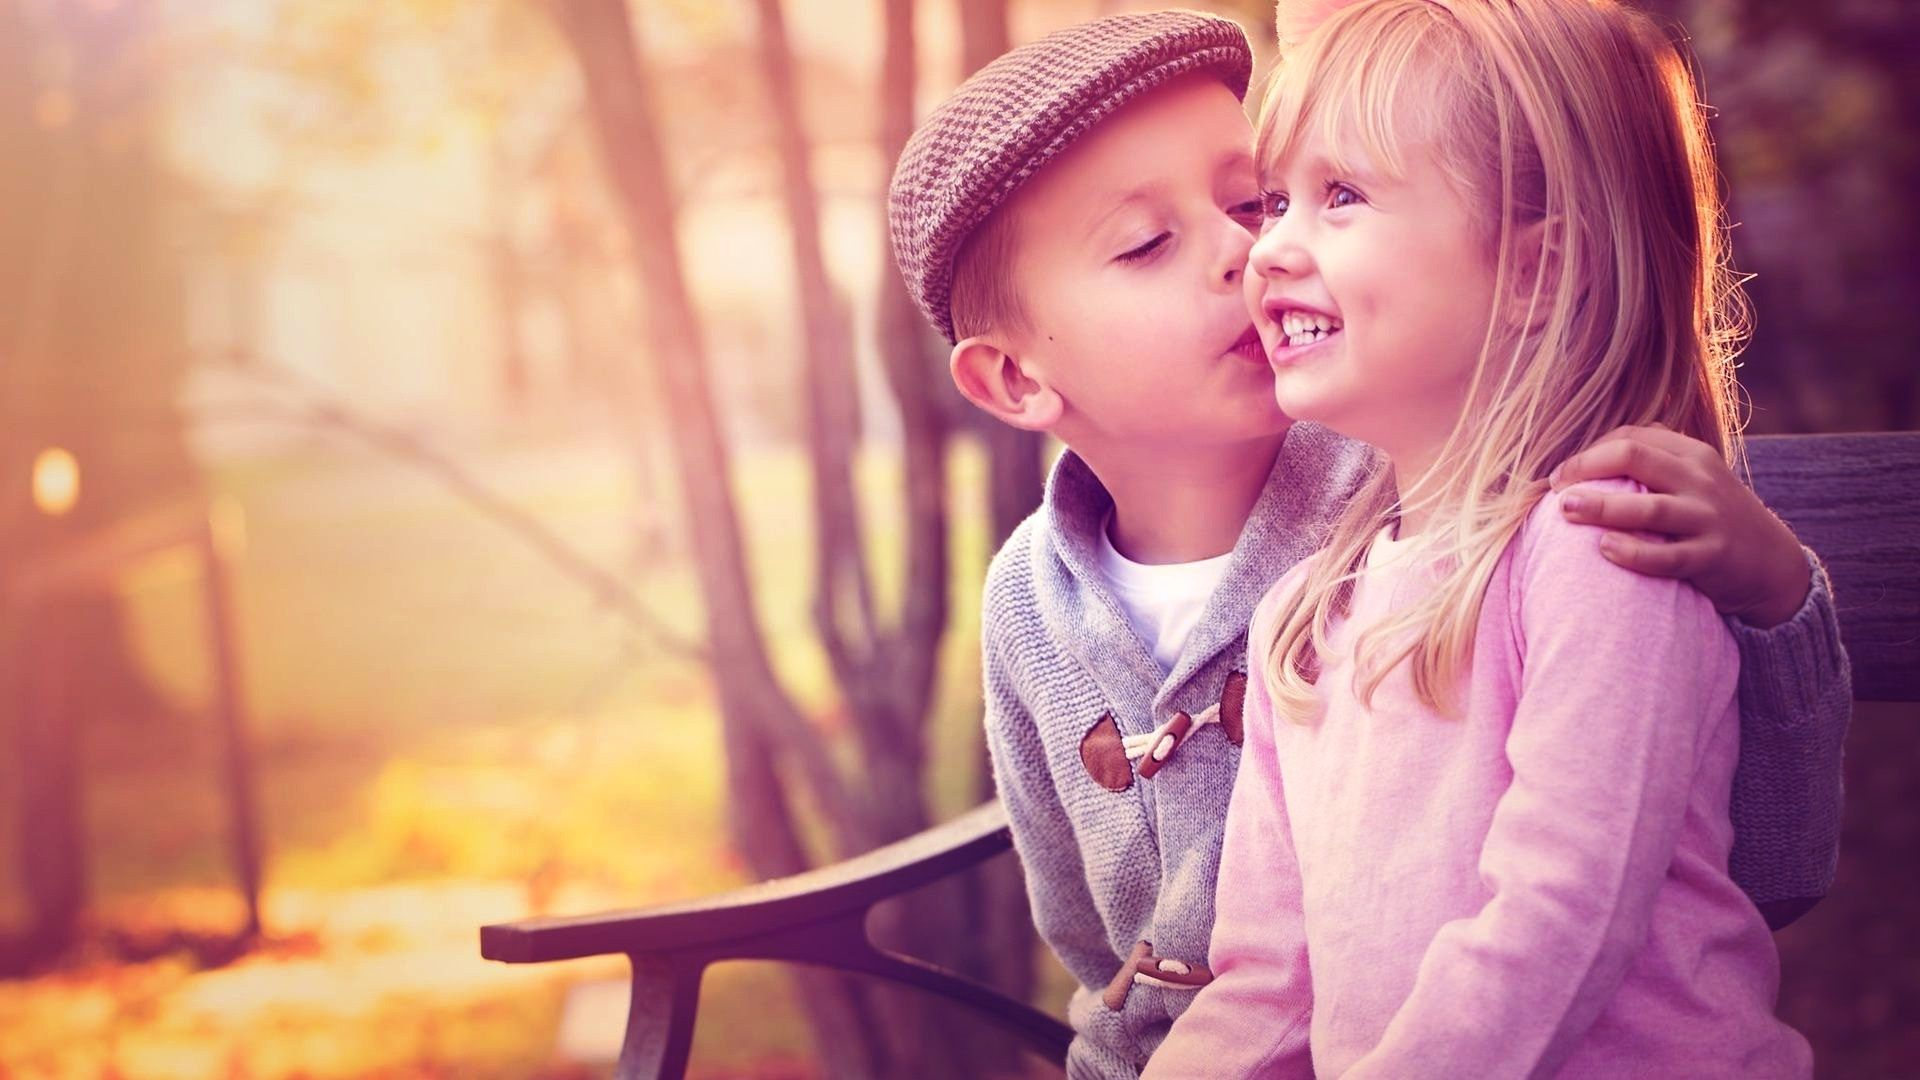 Top Cute Baby Couple Wallpapers Wallpapers  Just Too Cute -6099